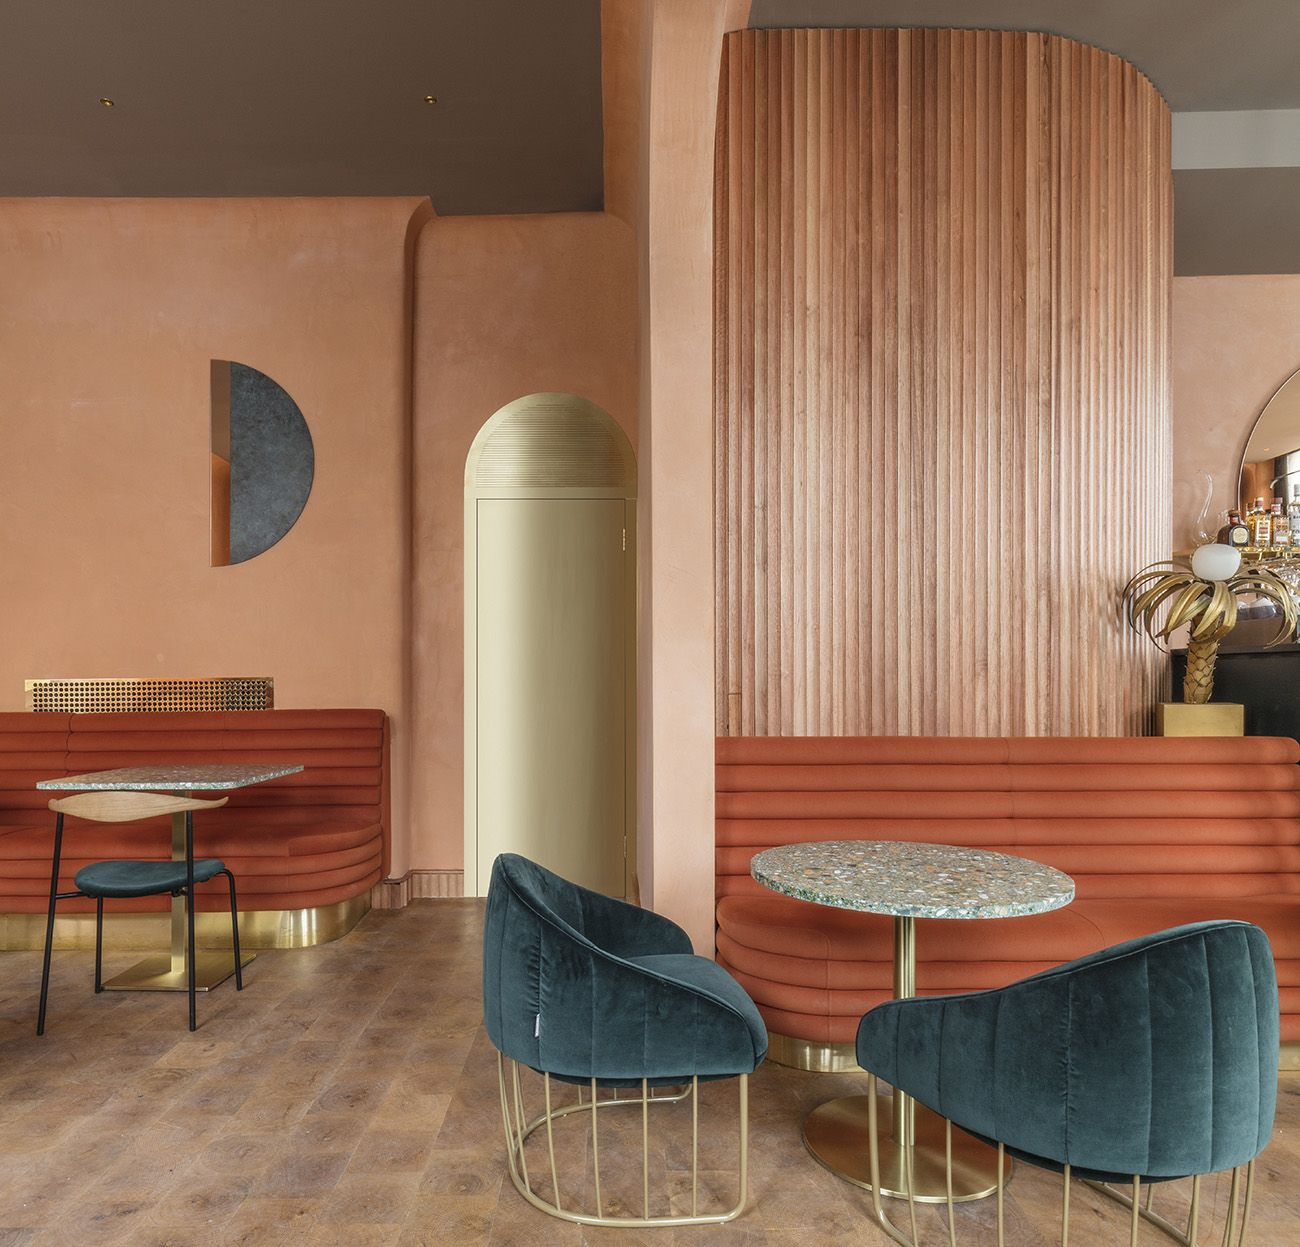 Terracotta walls, teal armchairs, brass arches, terrazzo tables and more at Omar's Place in London